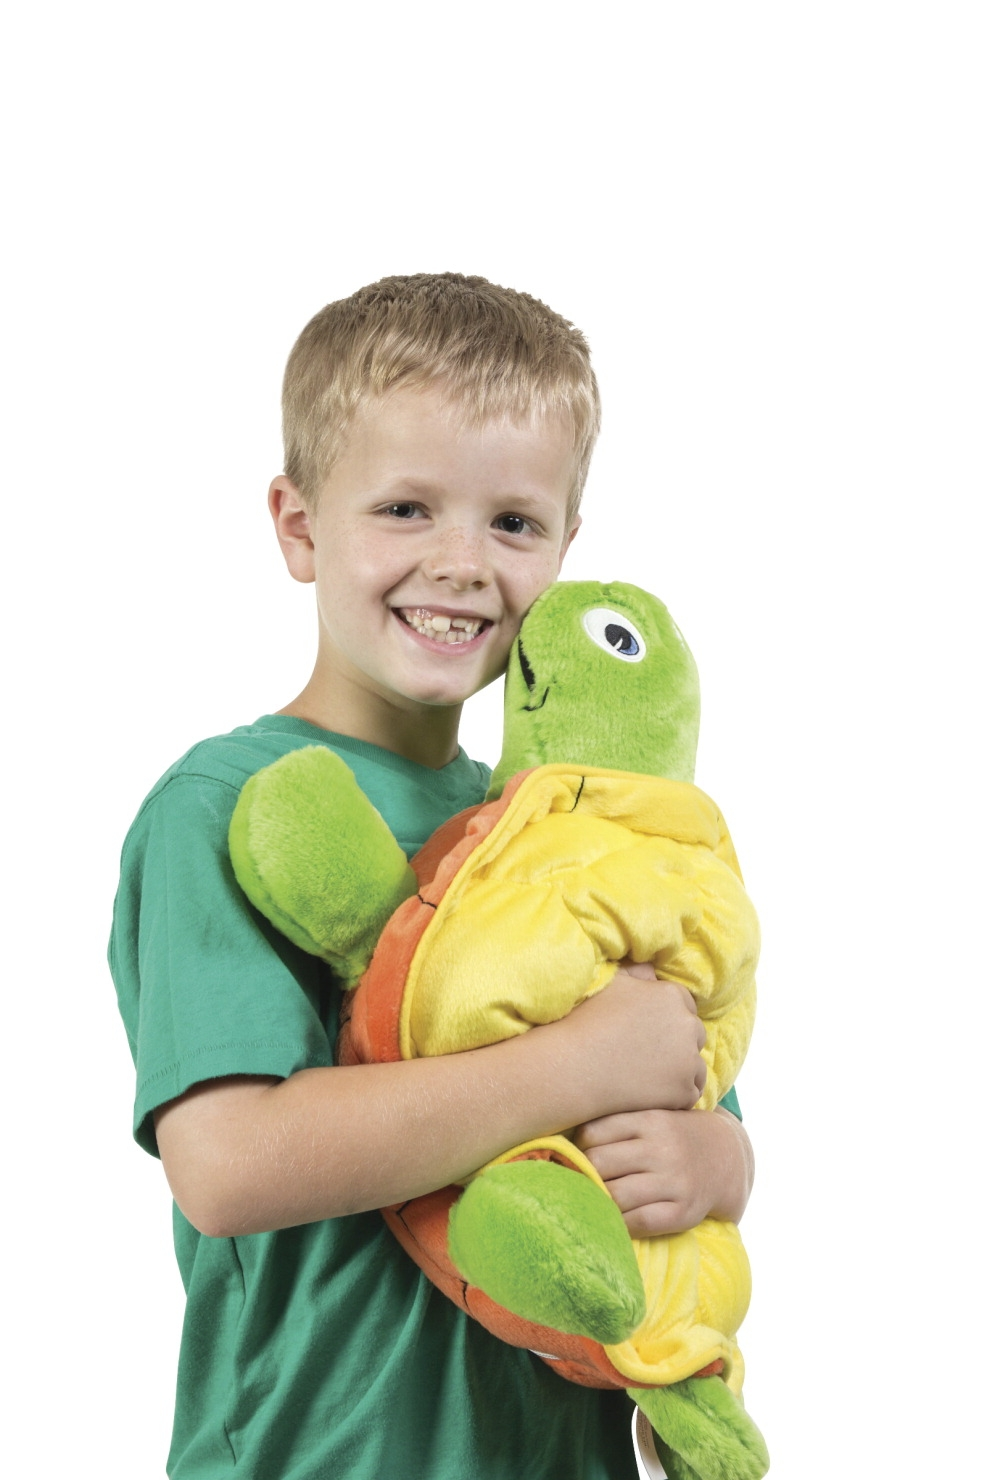 Special Populations School Smart Money Kit And Math Product - 1017364 - Sensation Products Giant Vibrating Turtle; 19 X 18 In 1017364